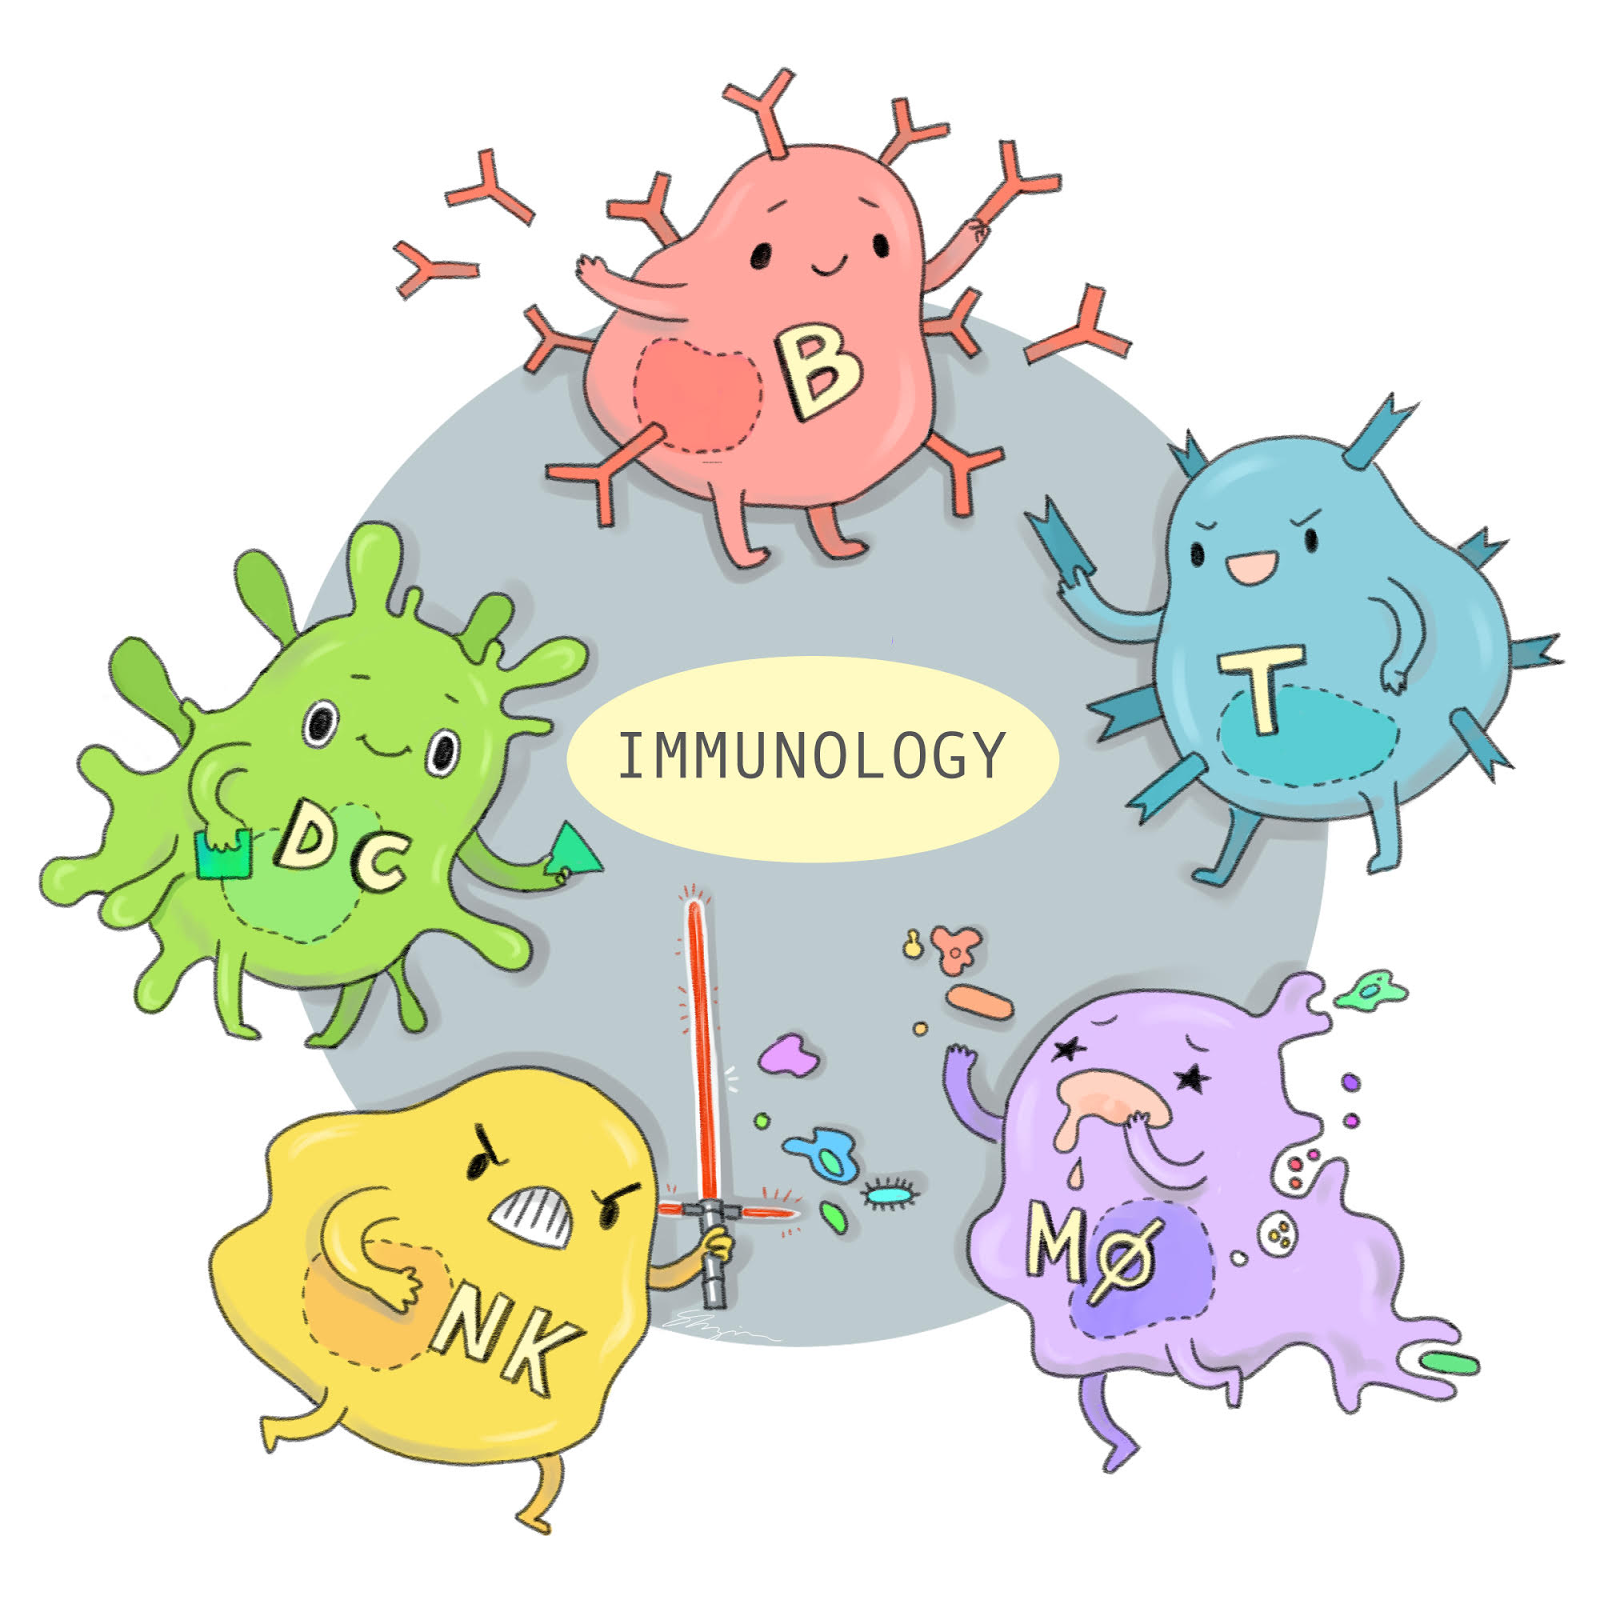 Immune cells clipart graphic library download Immune System Clip Art (104+ images in Collection) Page 3 graphic library download